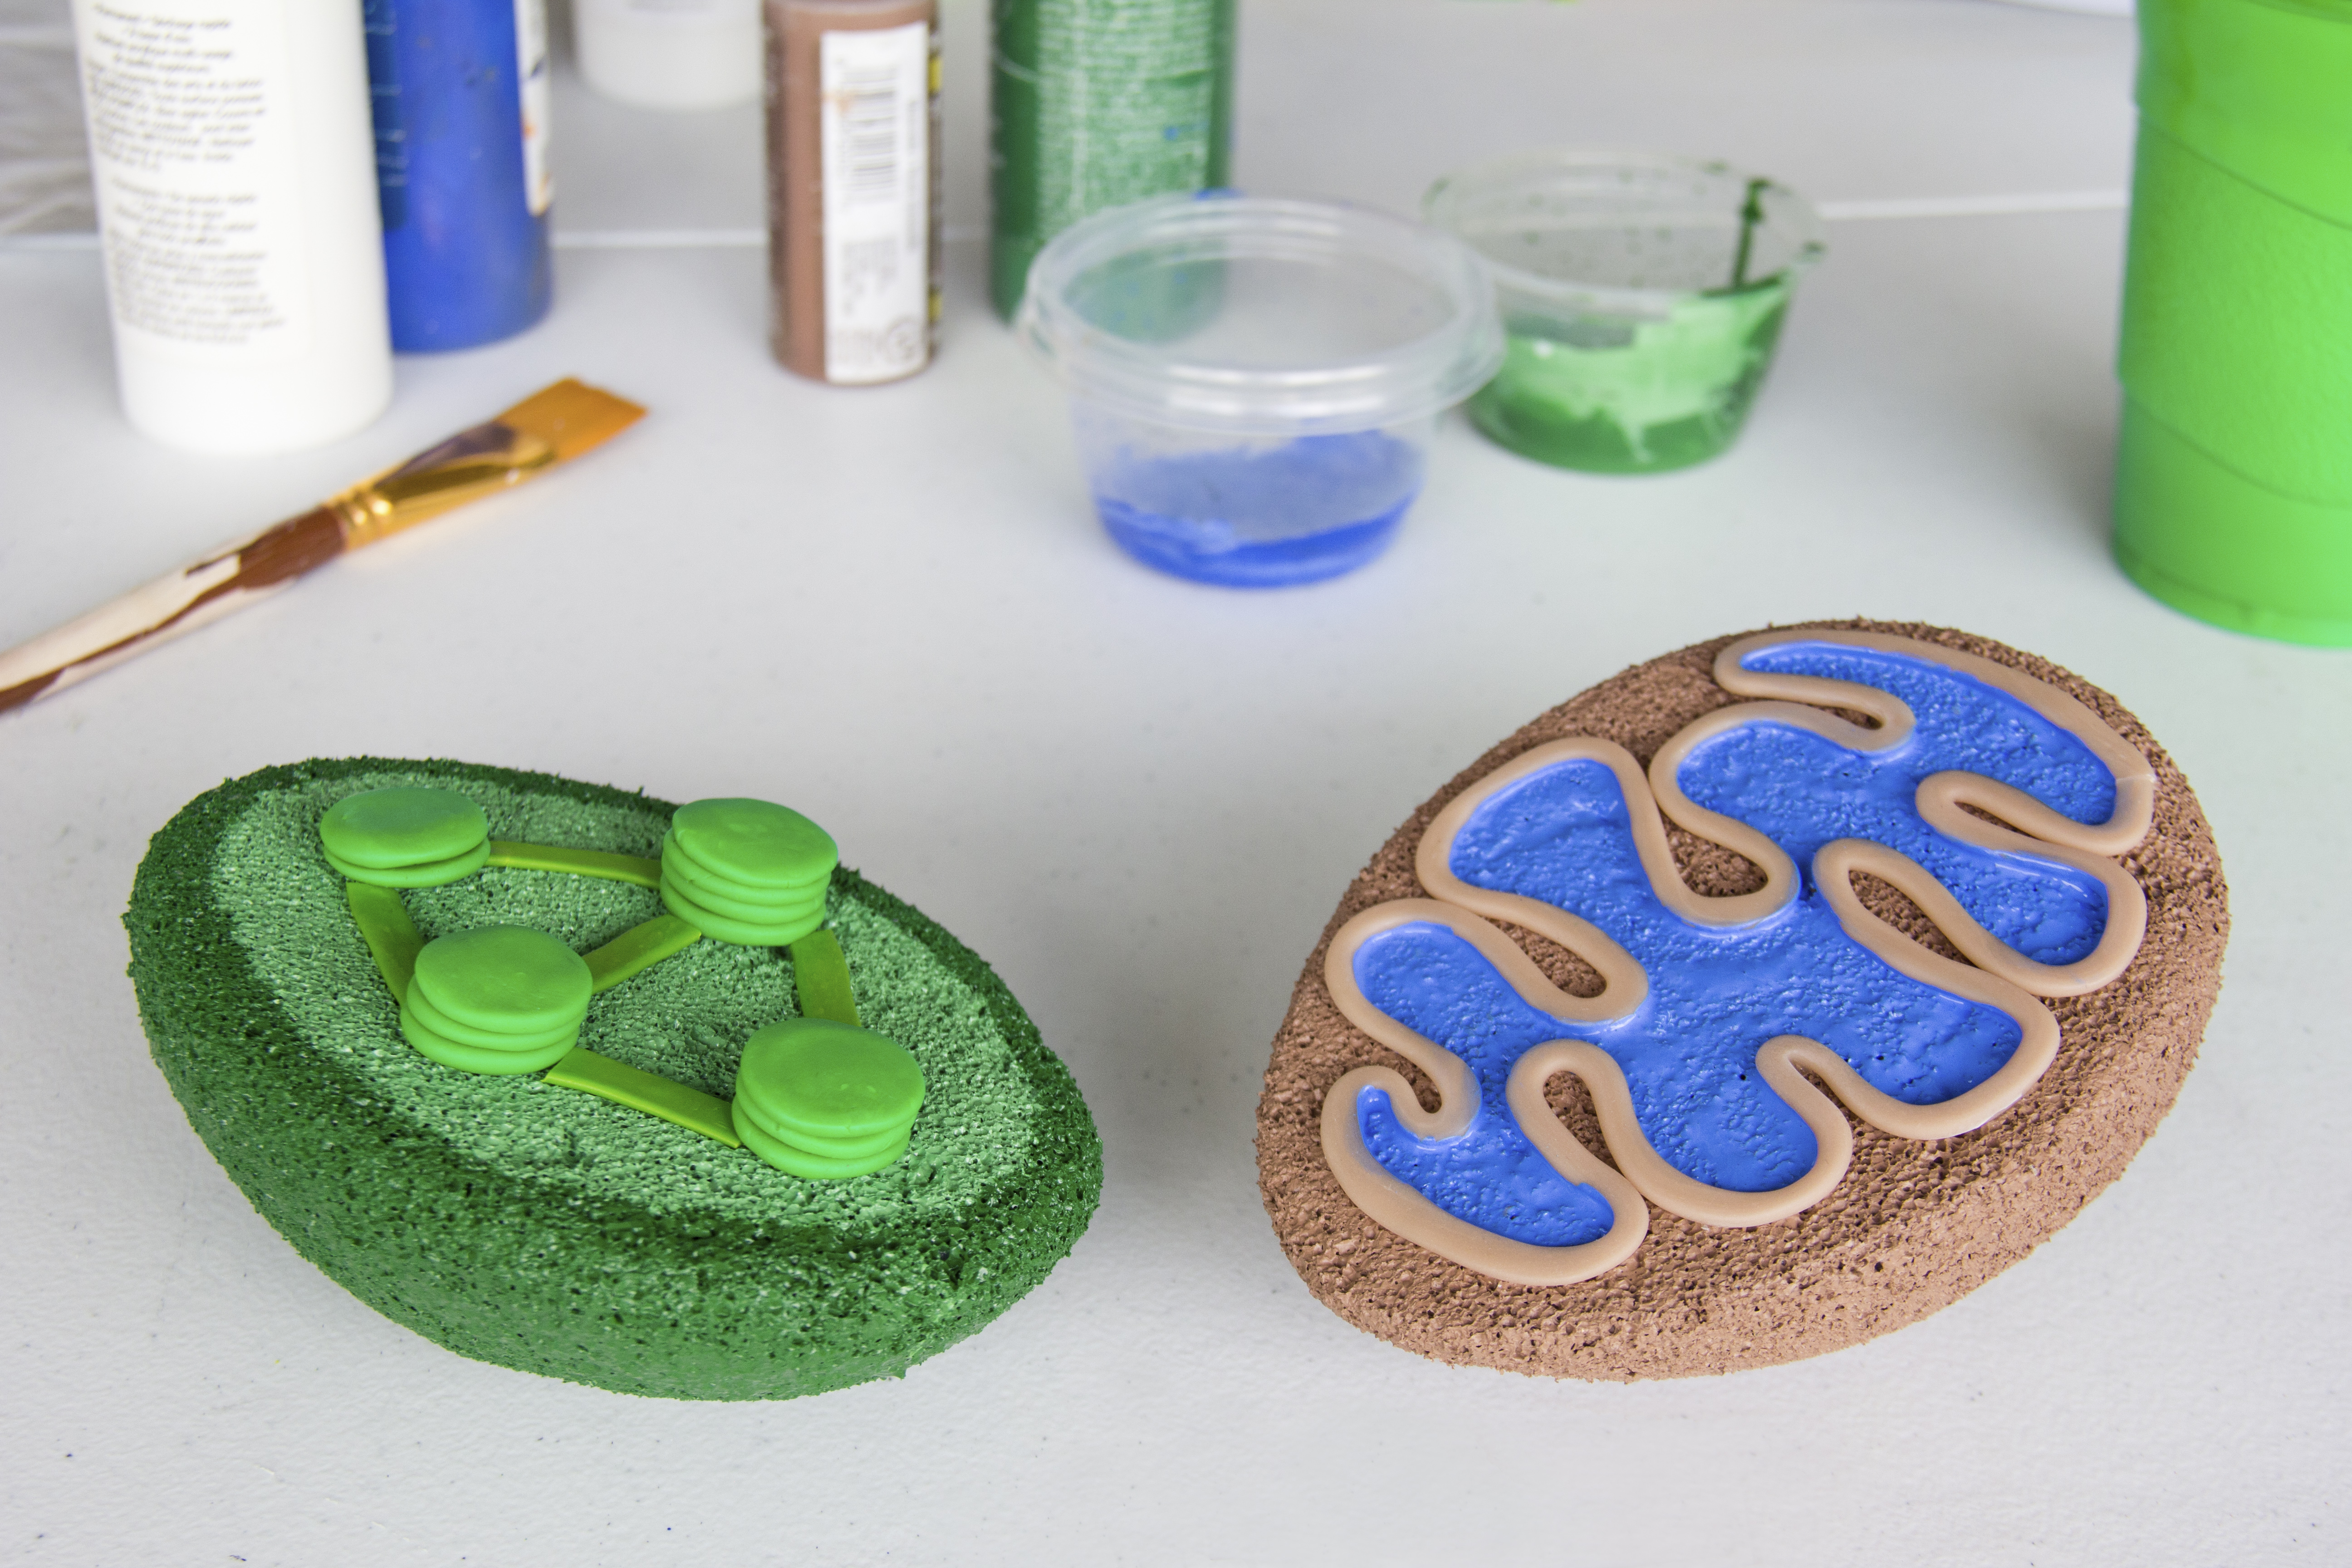 How to build a 3d model for cell biology projects mitochondria how to build a 3d model for cell biology projects mitochondria chloroplast sciencing ccuart Choice Image